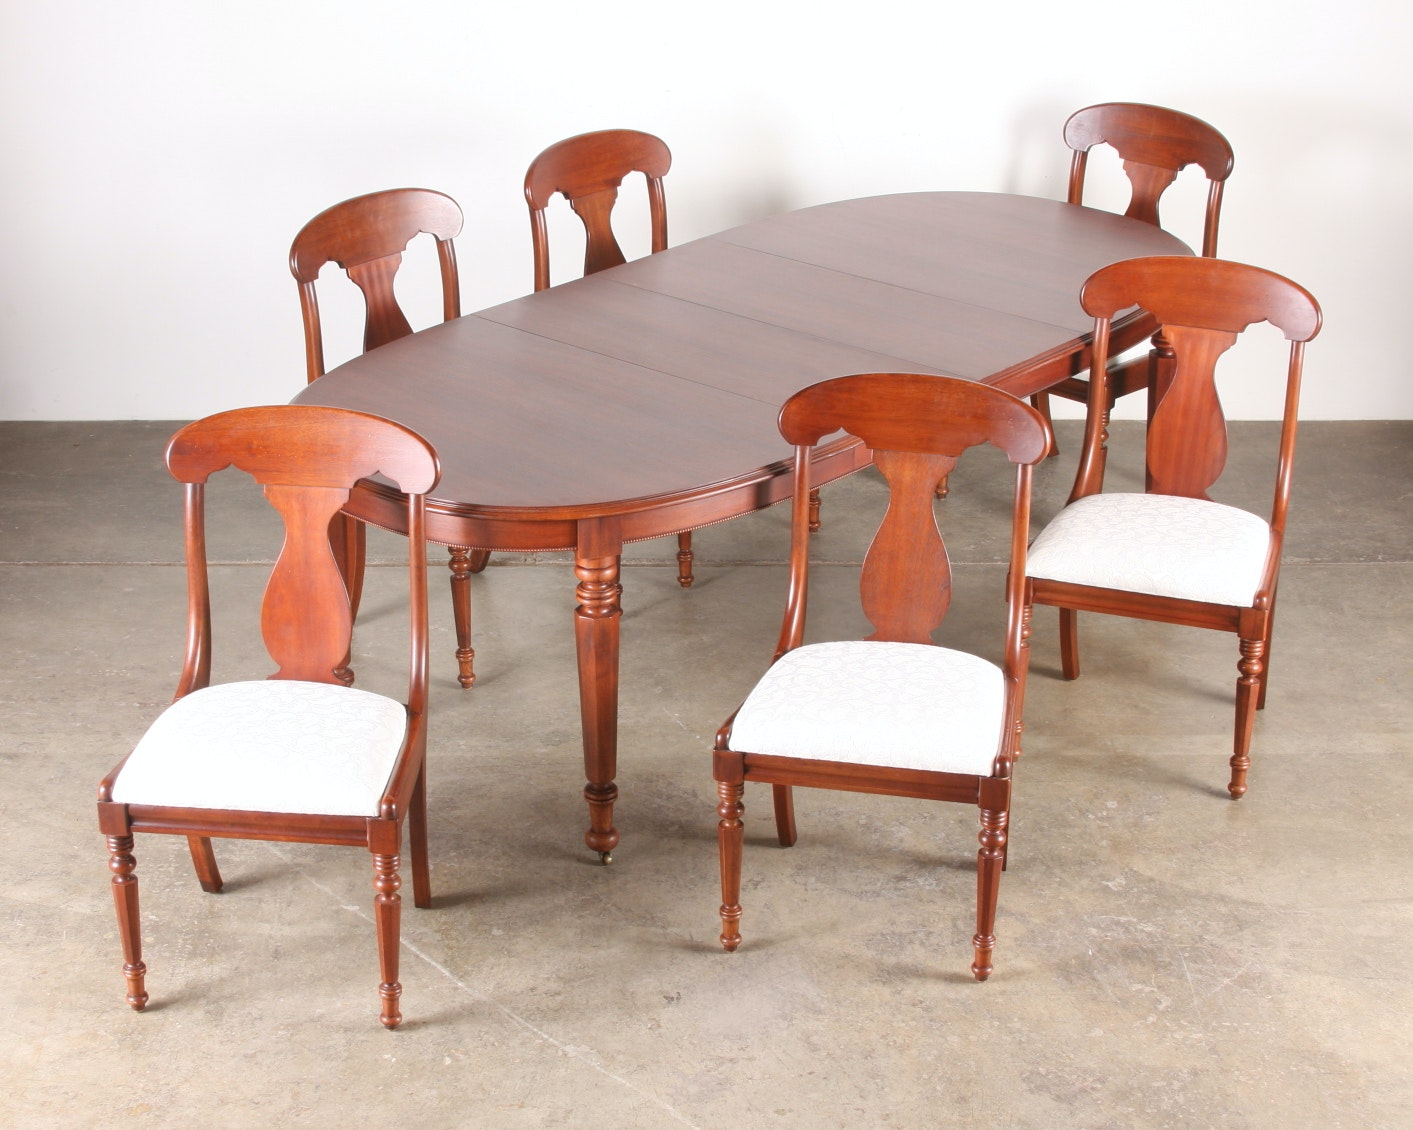 Lexington Vestiges Dining Table & Chairs